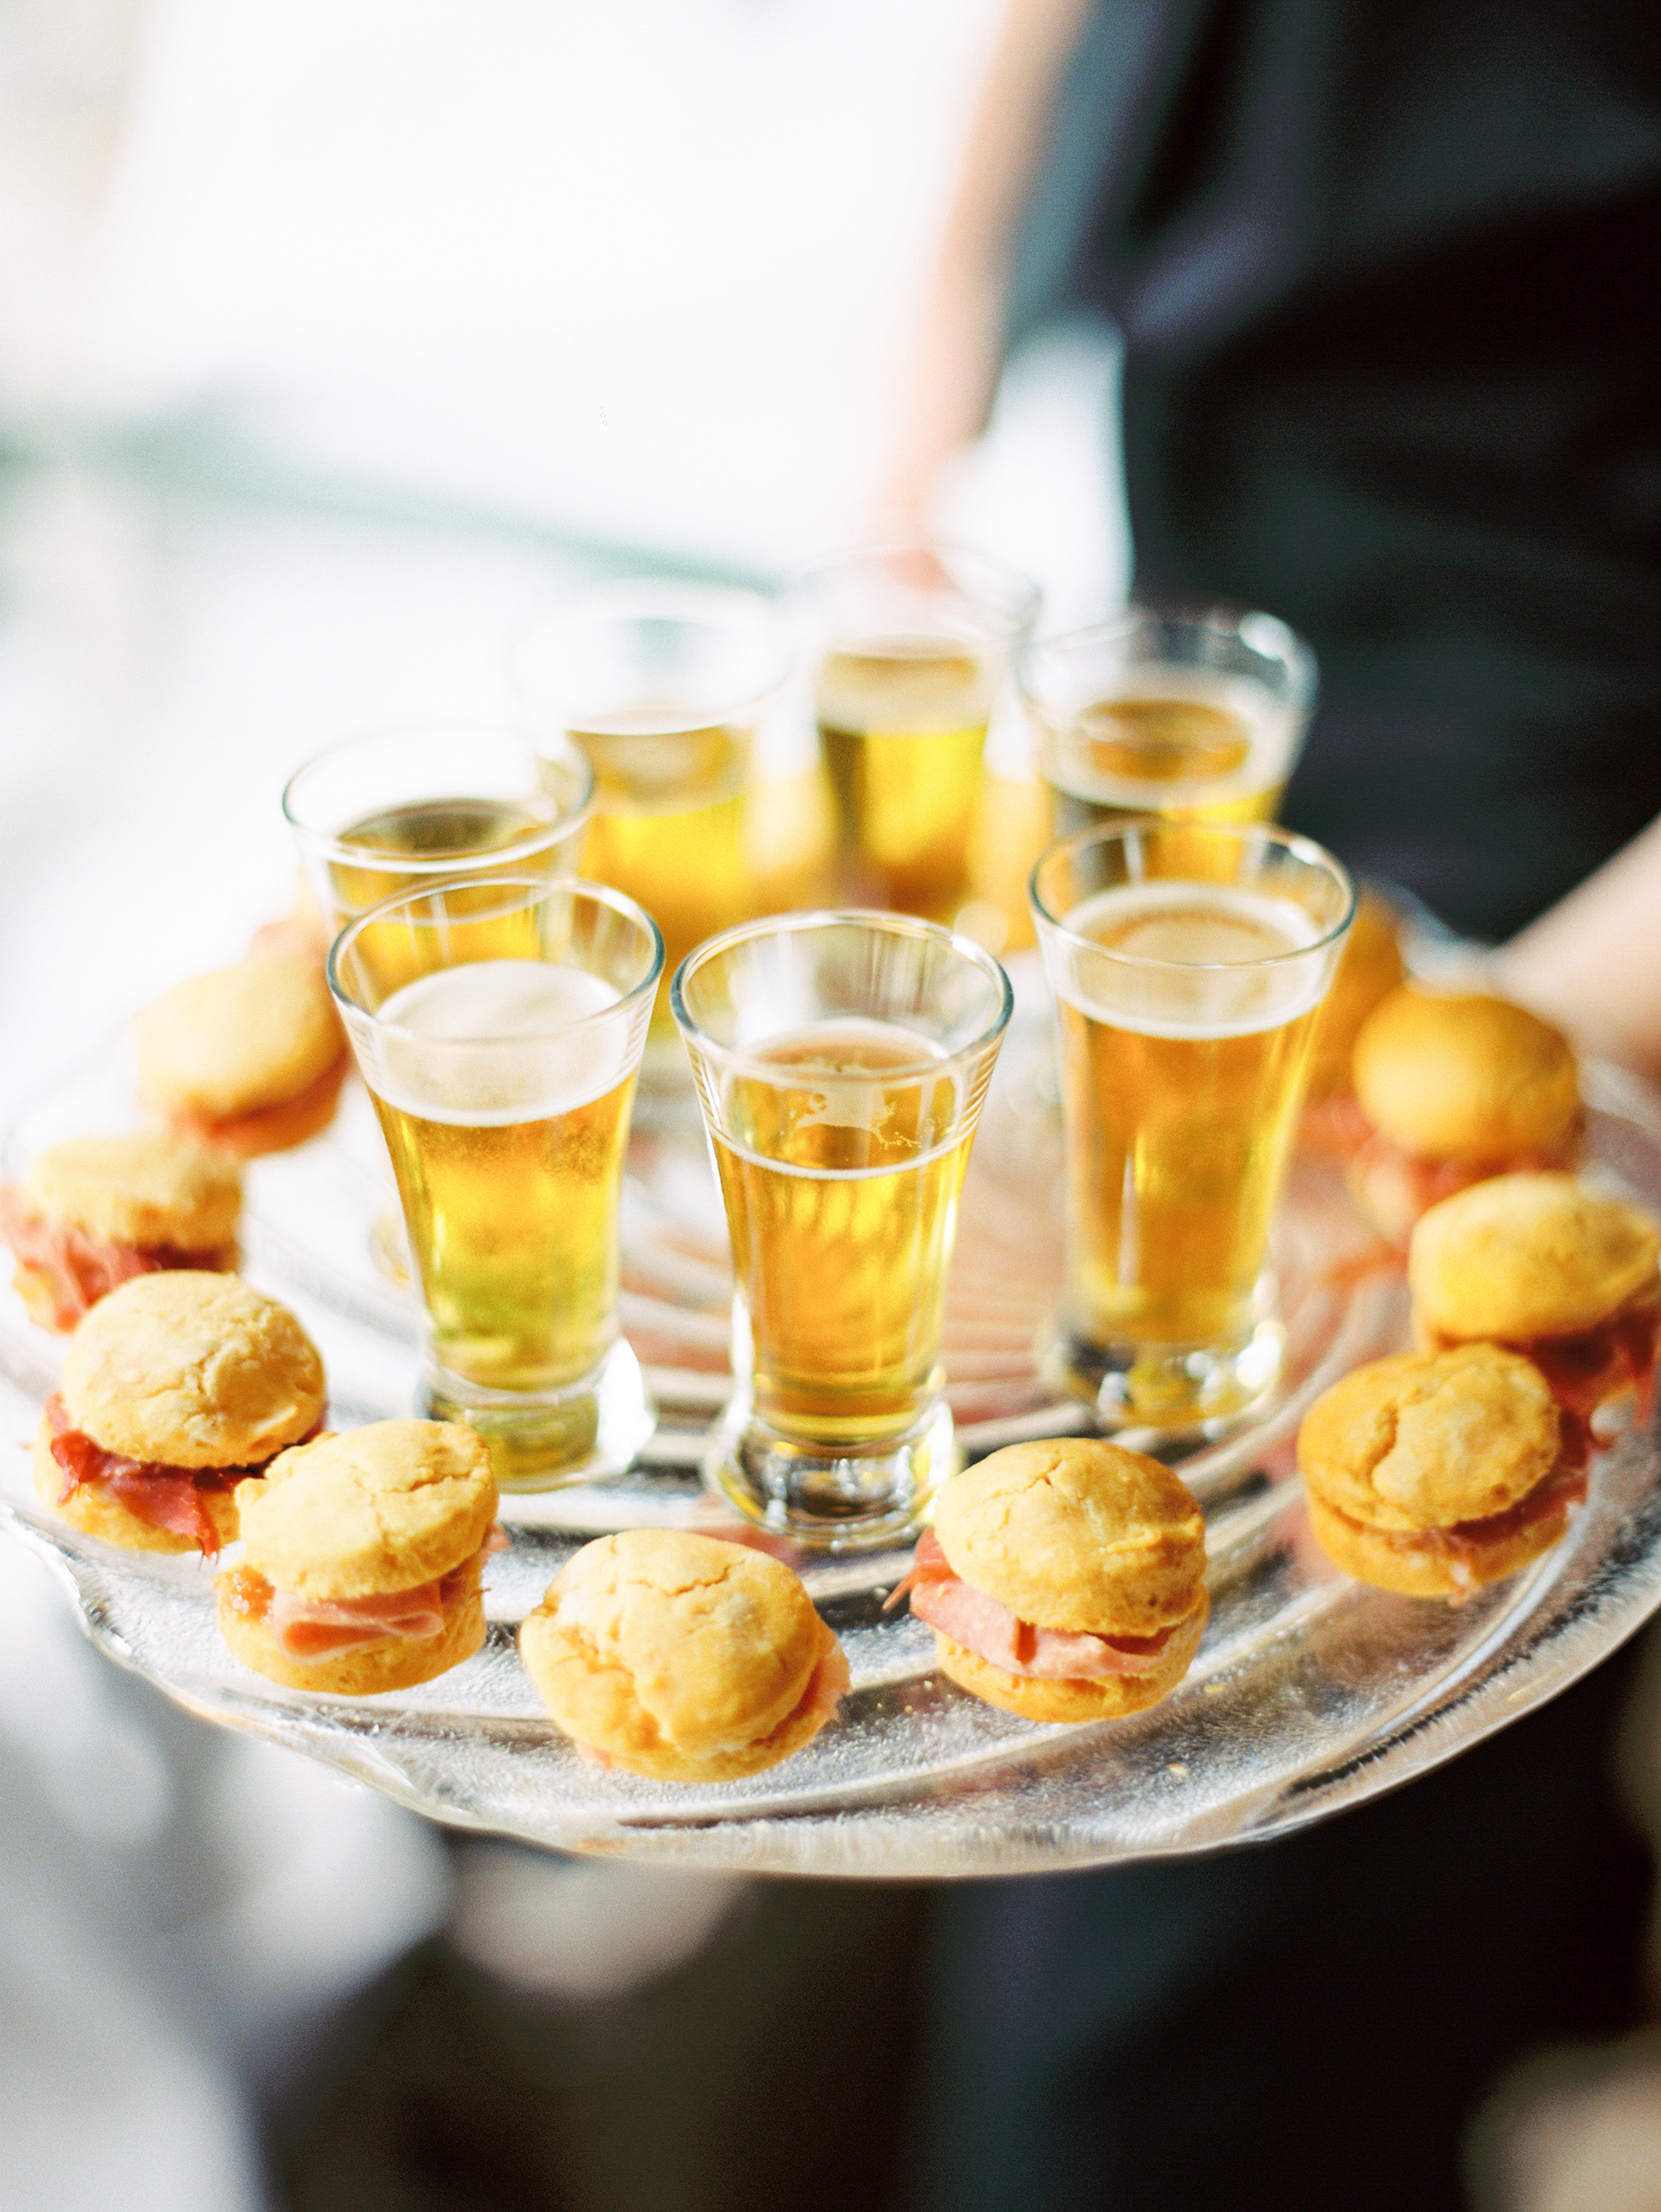 Caterers Say These Are the Foods Wedding Guests Always Finish First